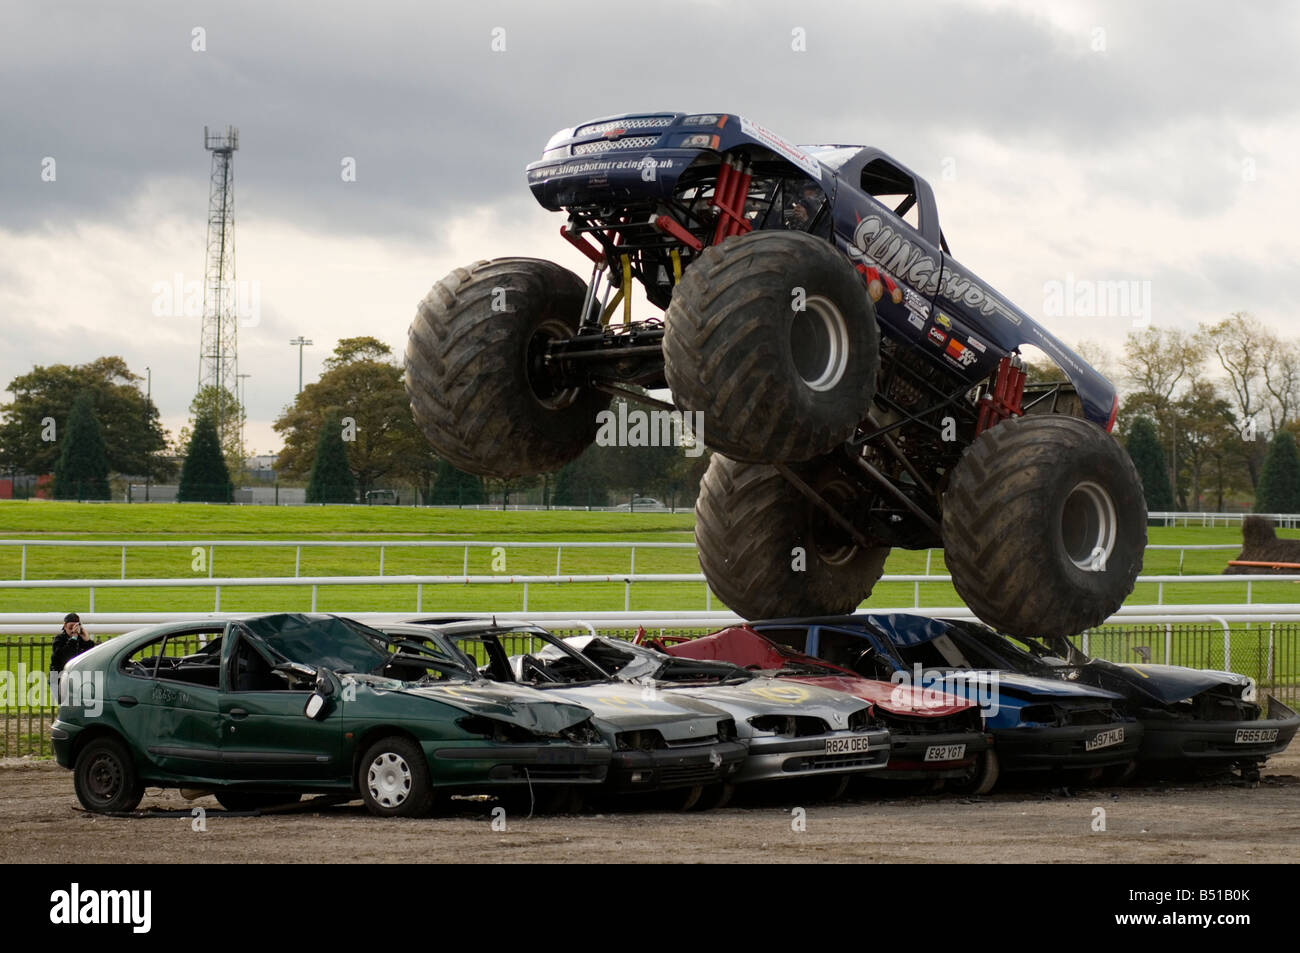 Monster Truck Big Wheels Trucks Suv Suv S Offroader By Four